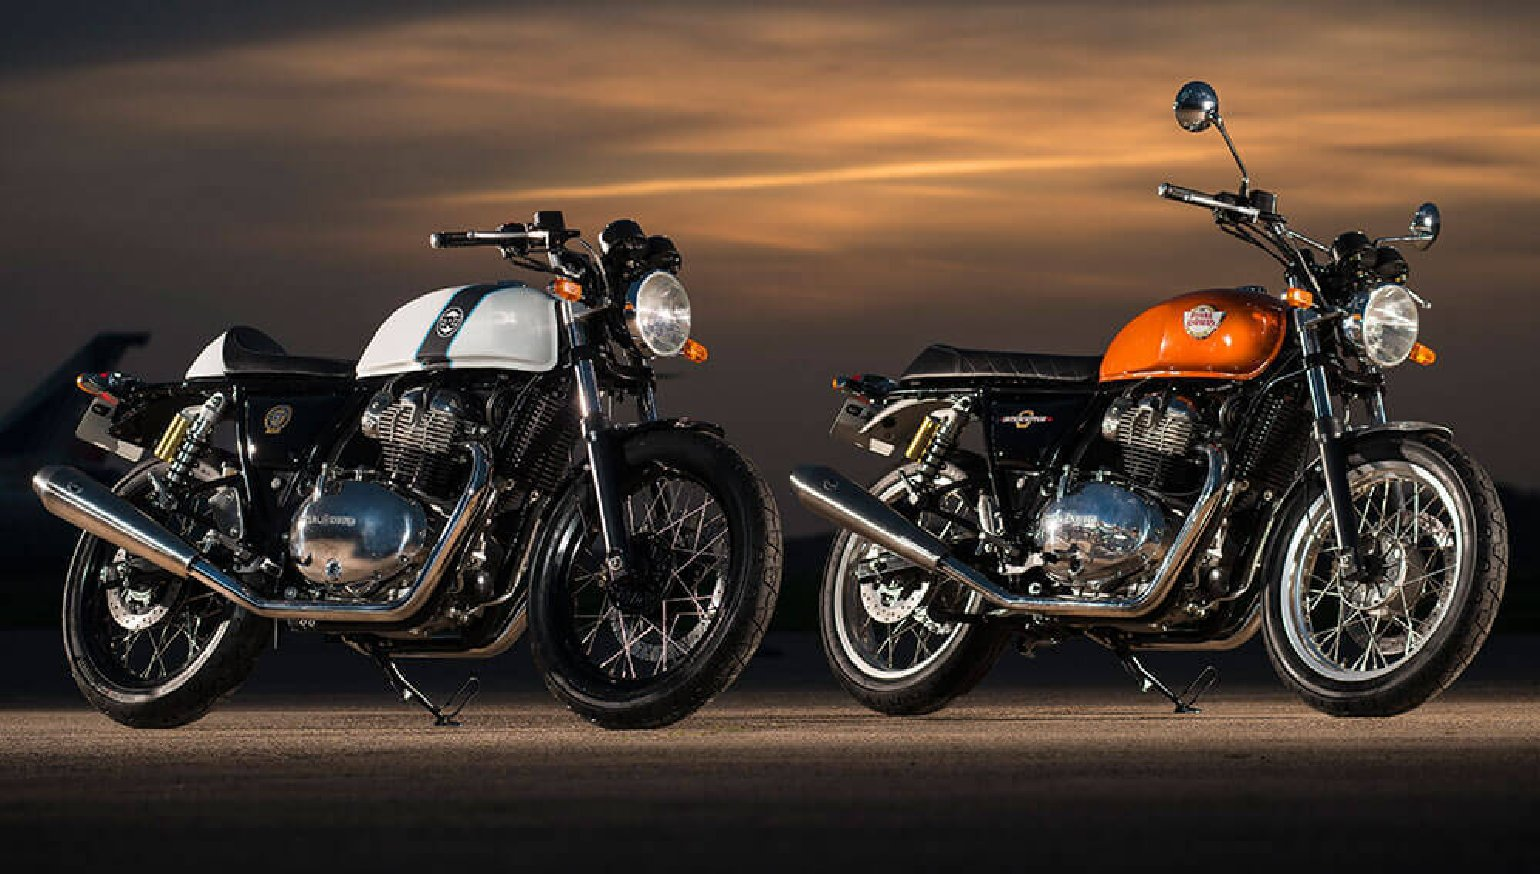 2018 Royal Enfield Interceptor 650 And Continental Gt First Look